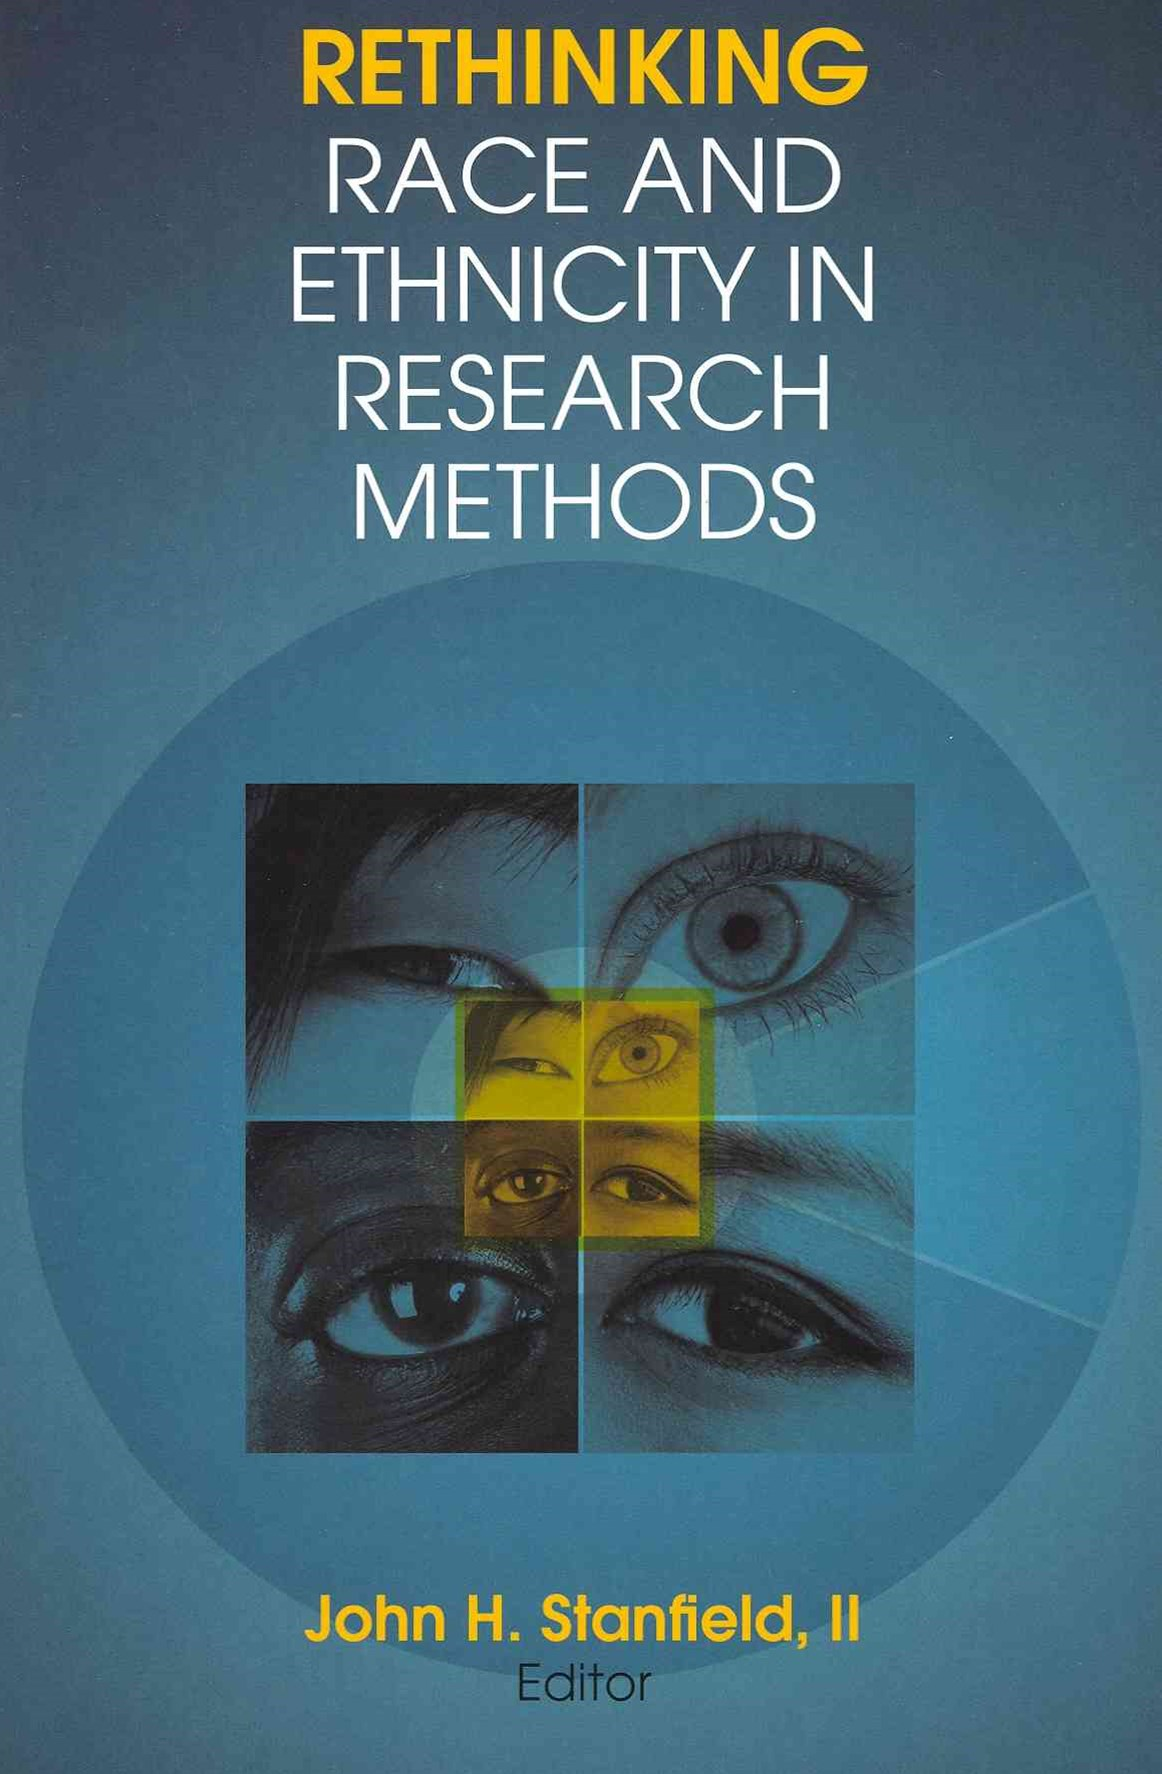 Rethinking Race and Ethnicity in Research Methods